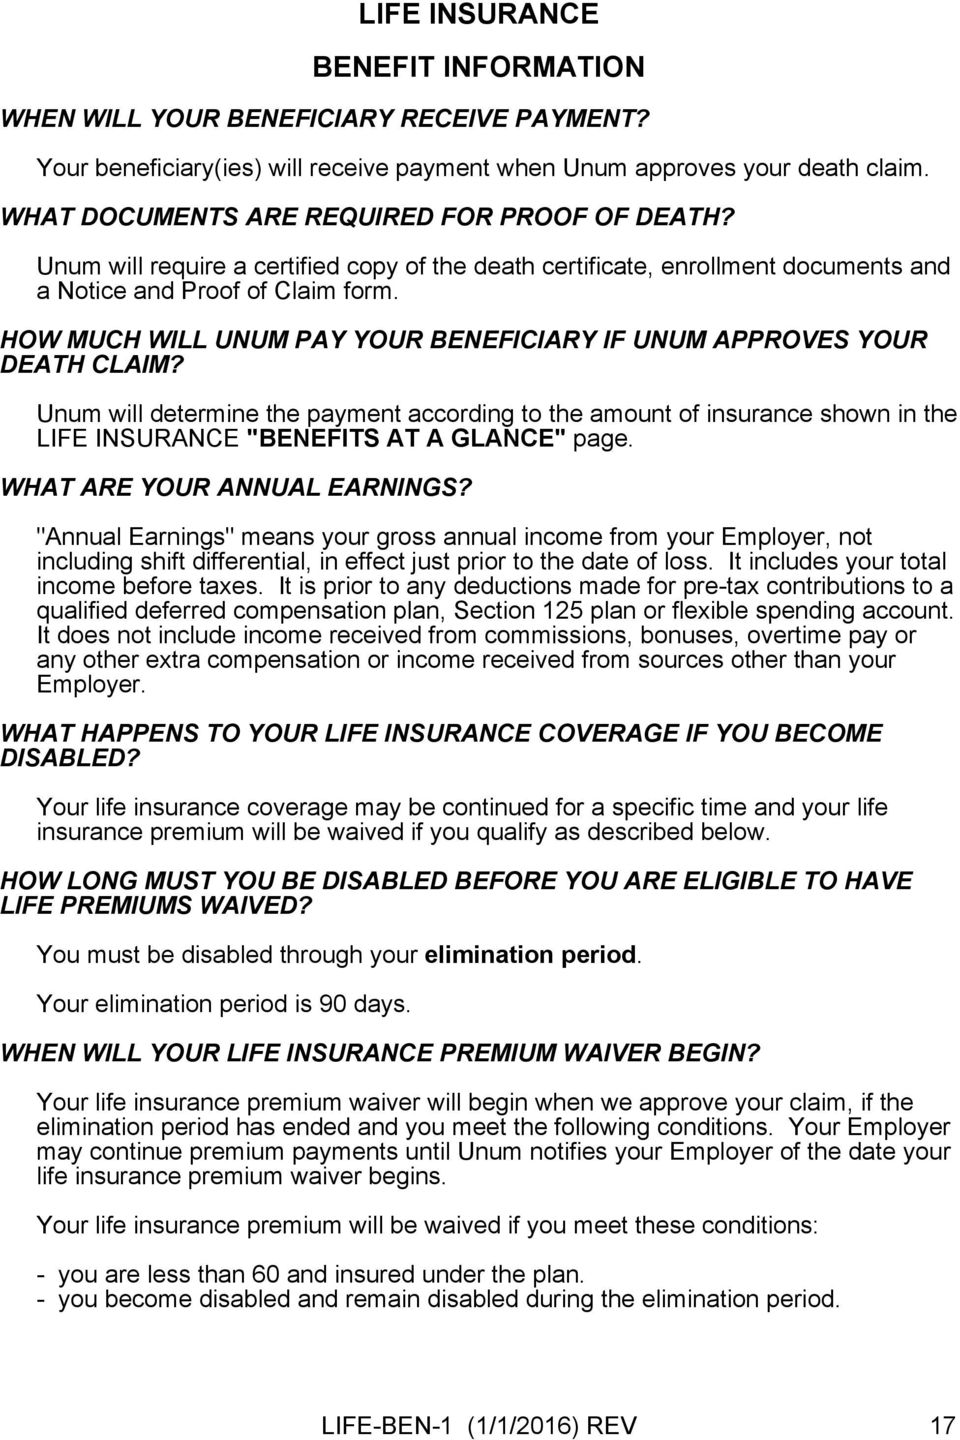 "HOW MUCH WILL UNUM PAY YOUR BENEFICIARY IF UNUM APPROVES YOUR DEATH CLAIM? Unum will determine the payment according to the amount of insurance shown in the LIFE INSURANCE ""BENEFITS AT A GLANCE"" page."